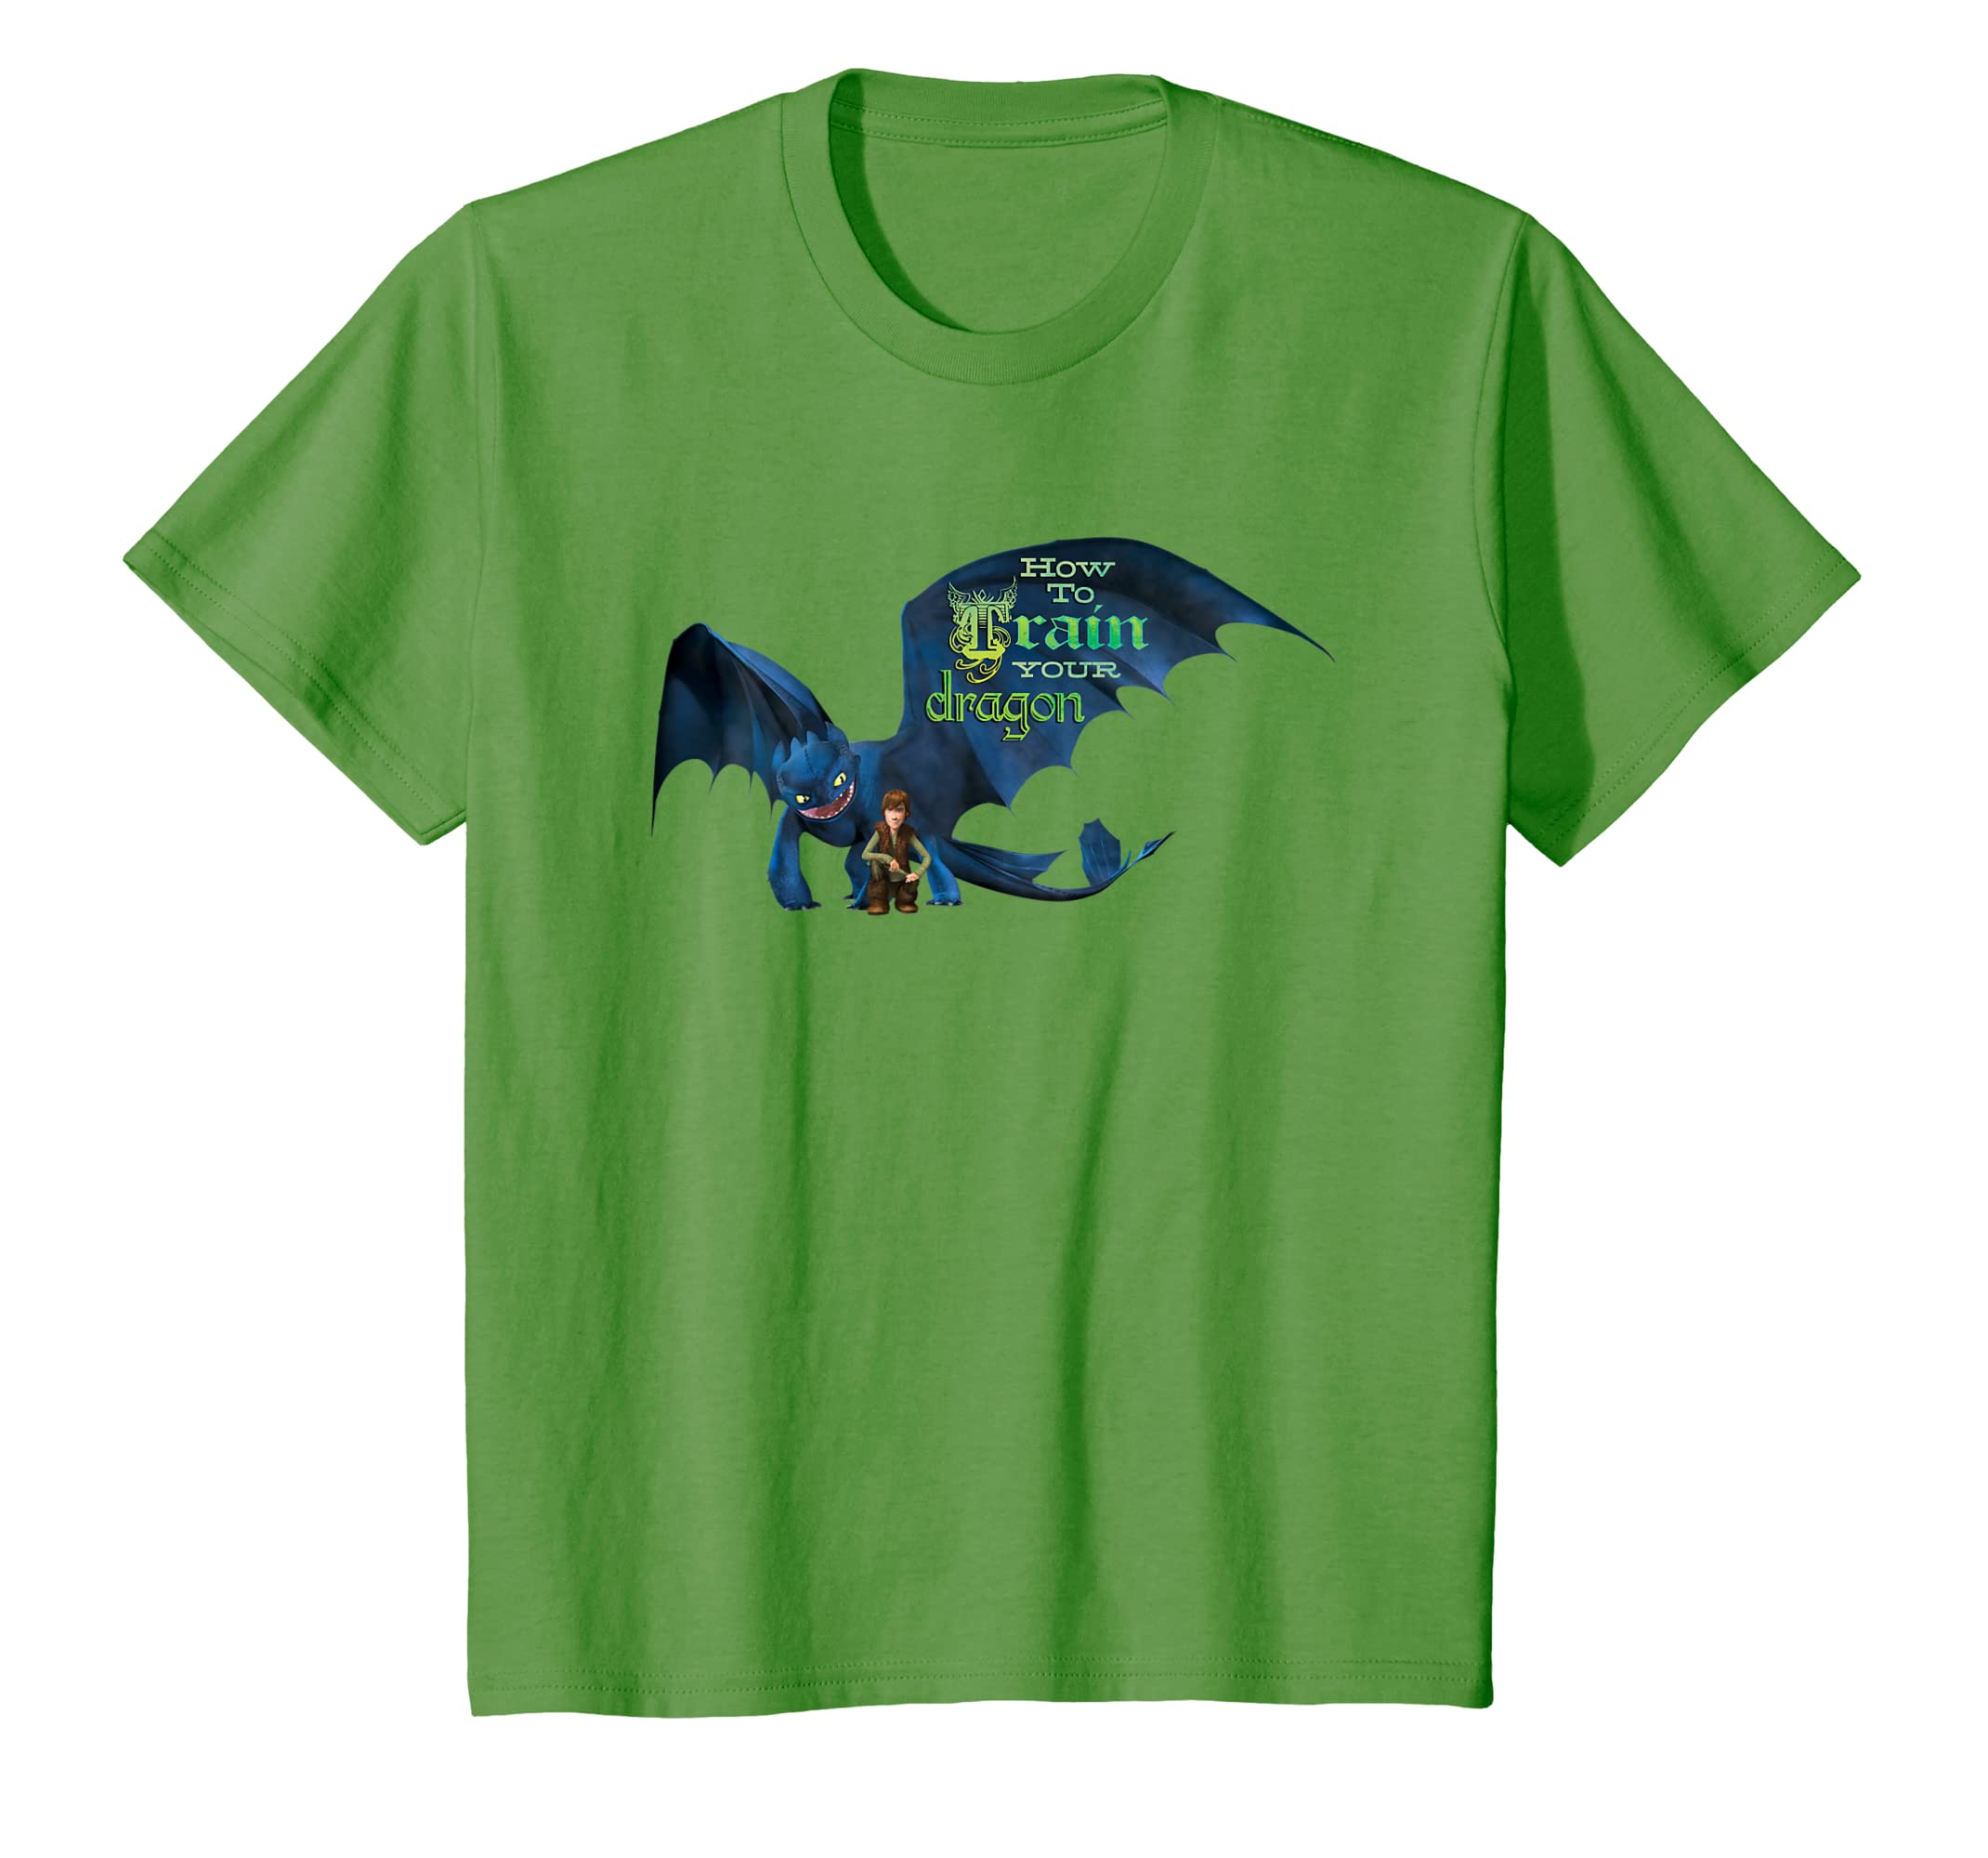 6efa7fa65 Amazon.com: Kids DreamWorks' Dragons: Toothless and Hiccup Title T-Shirt:  Clothing